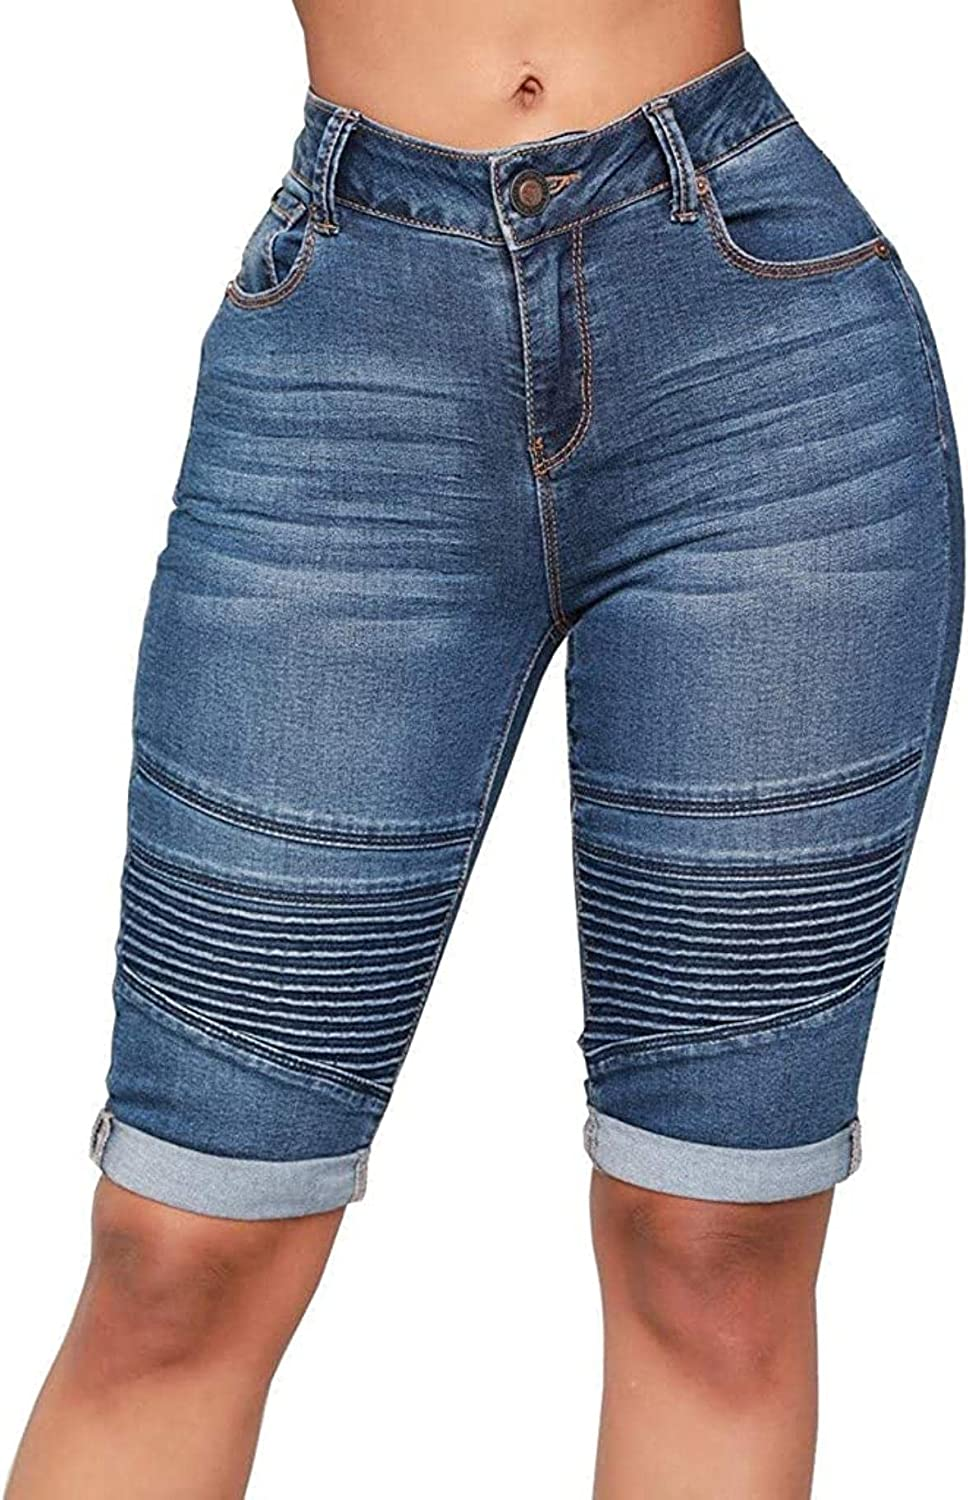 HEREEQWomen Plus Size Stretchy Bermuda Denim Shorts Casual Ripped Knee Length Jeans